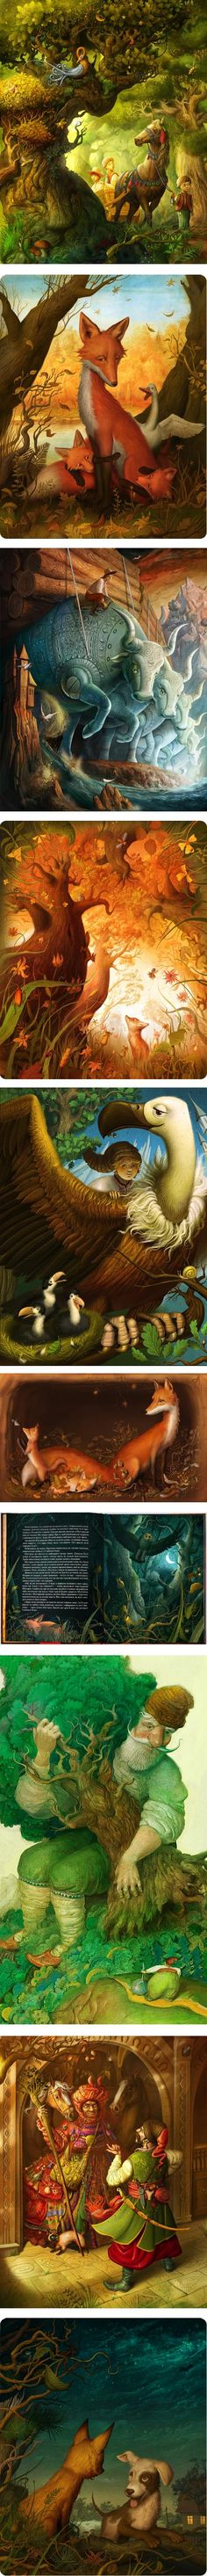 Ivan Sulima. Ivan Sulima is a Ukrainian illustrator who focuses on children's book illustration.